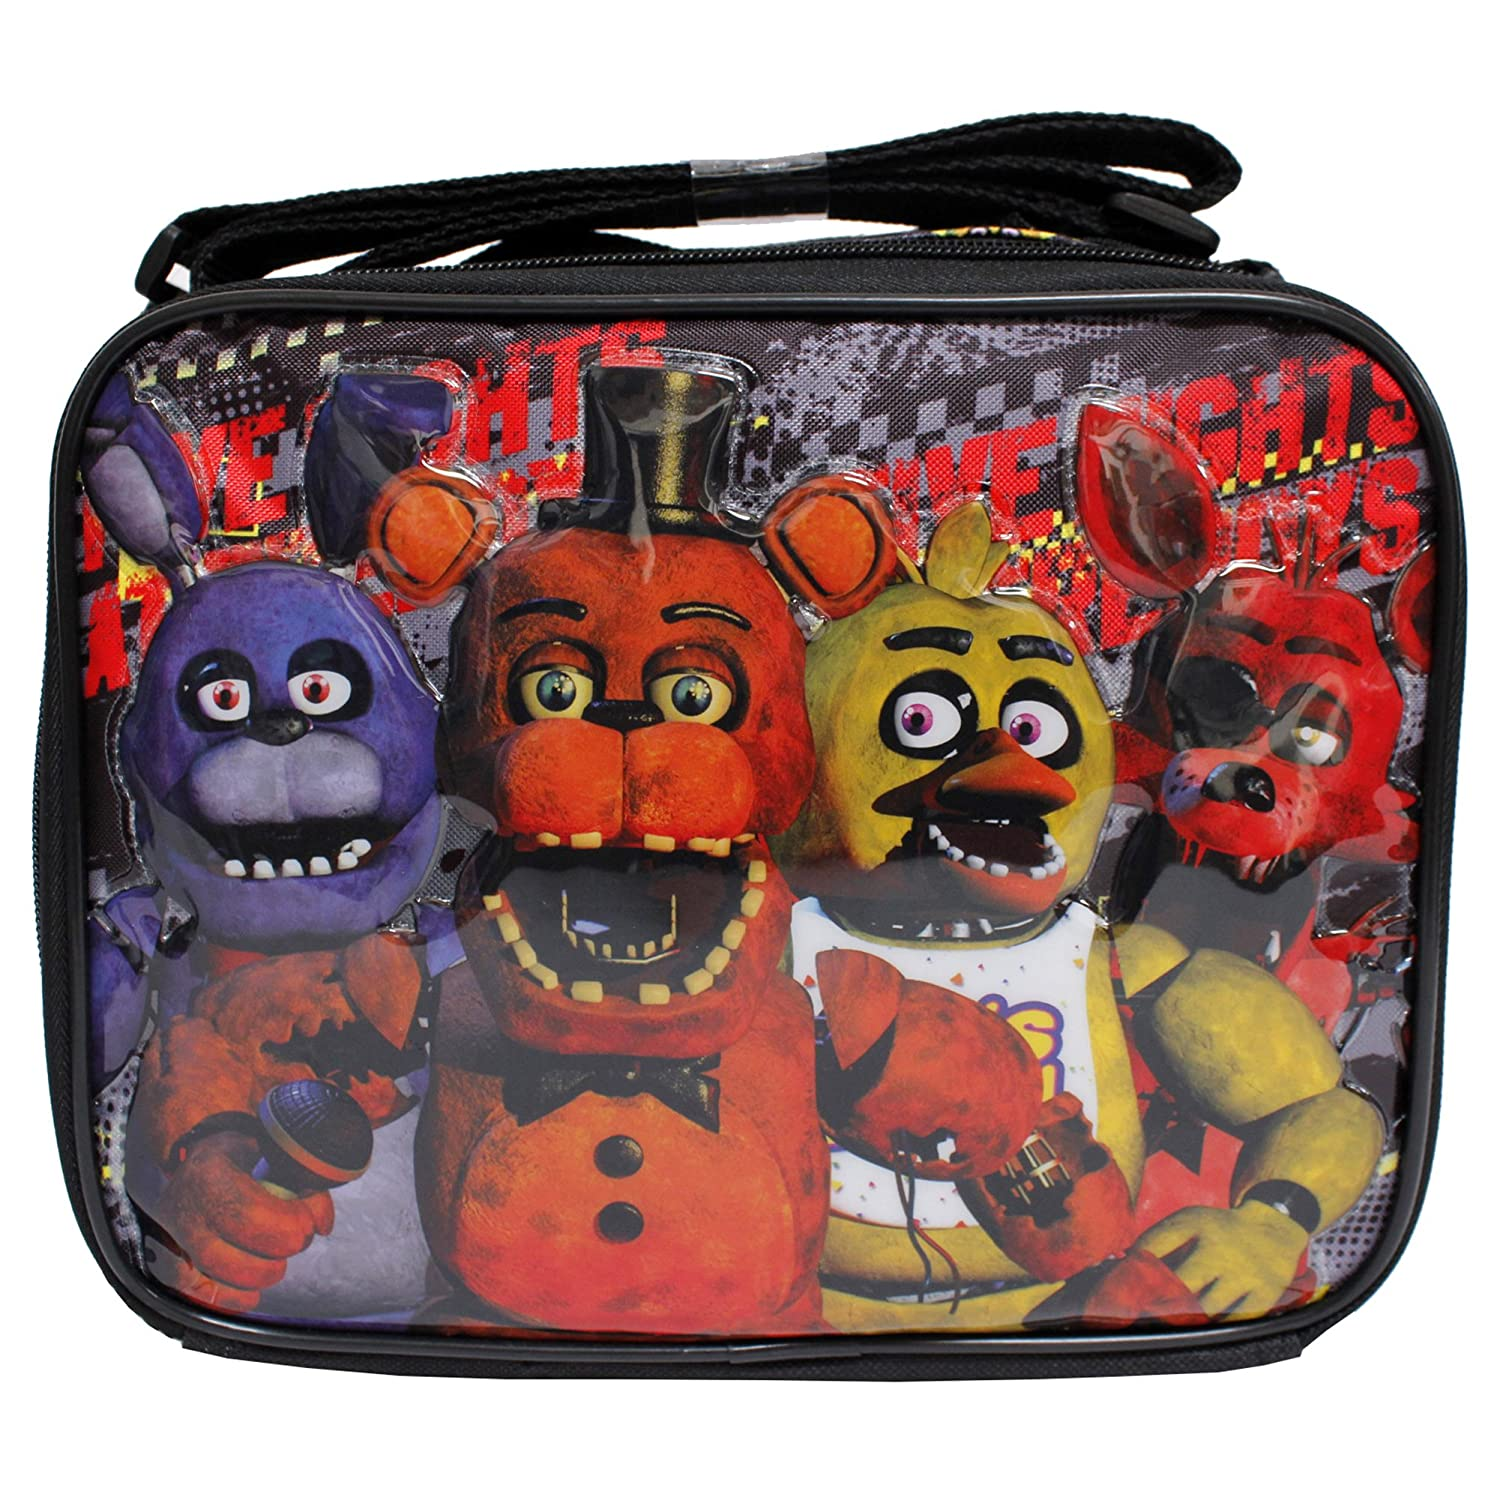 Five Nights at Freddy's New Black Insulated Boys' School Lunch Bag-All 4